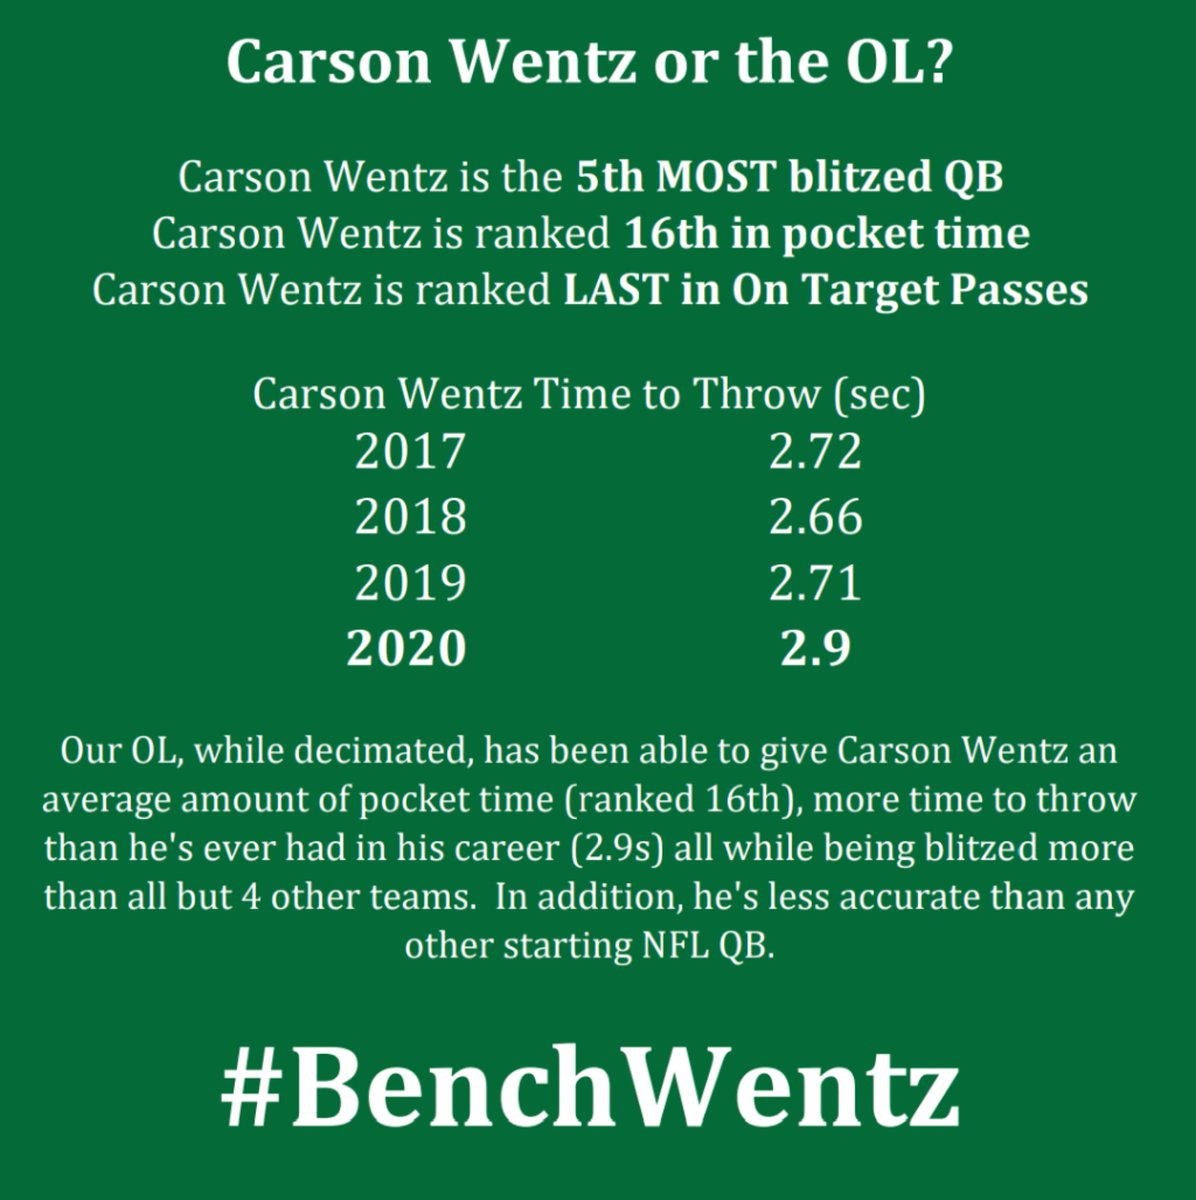 Stats don't lie  #BenchWentz  #nfl #flyeaglesfly #philadelphiaeagles #eagles #birdgang #bleedgreen #gobirds #philadelphiaeaglespodcast #eaglespodcast #podcast #baldeaglepodcast #nfceast #philadelphiaeaglesnation #podcasts #nflnews #nflfootball #eaglesnews #nflstats  #eaglesstats